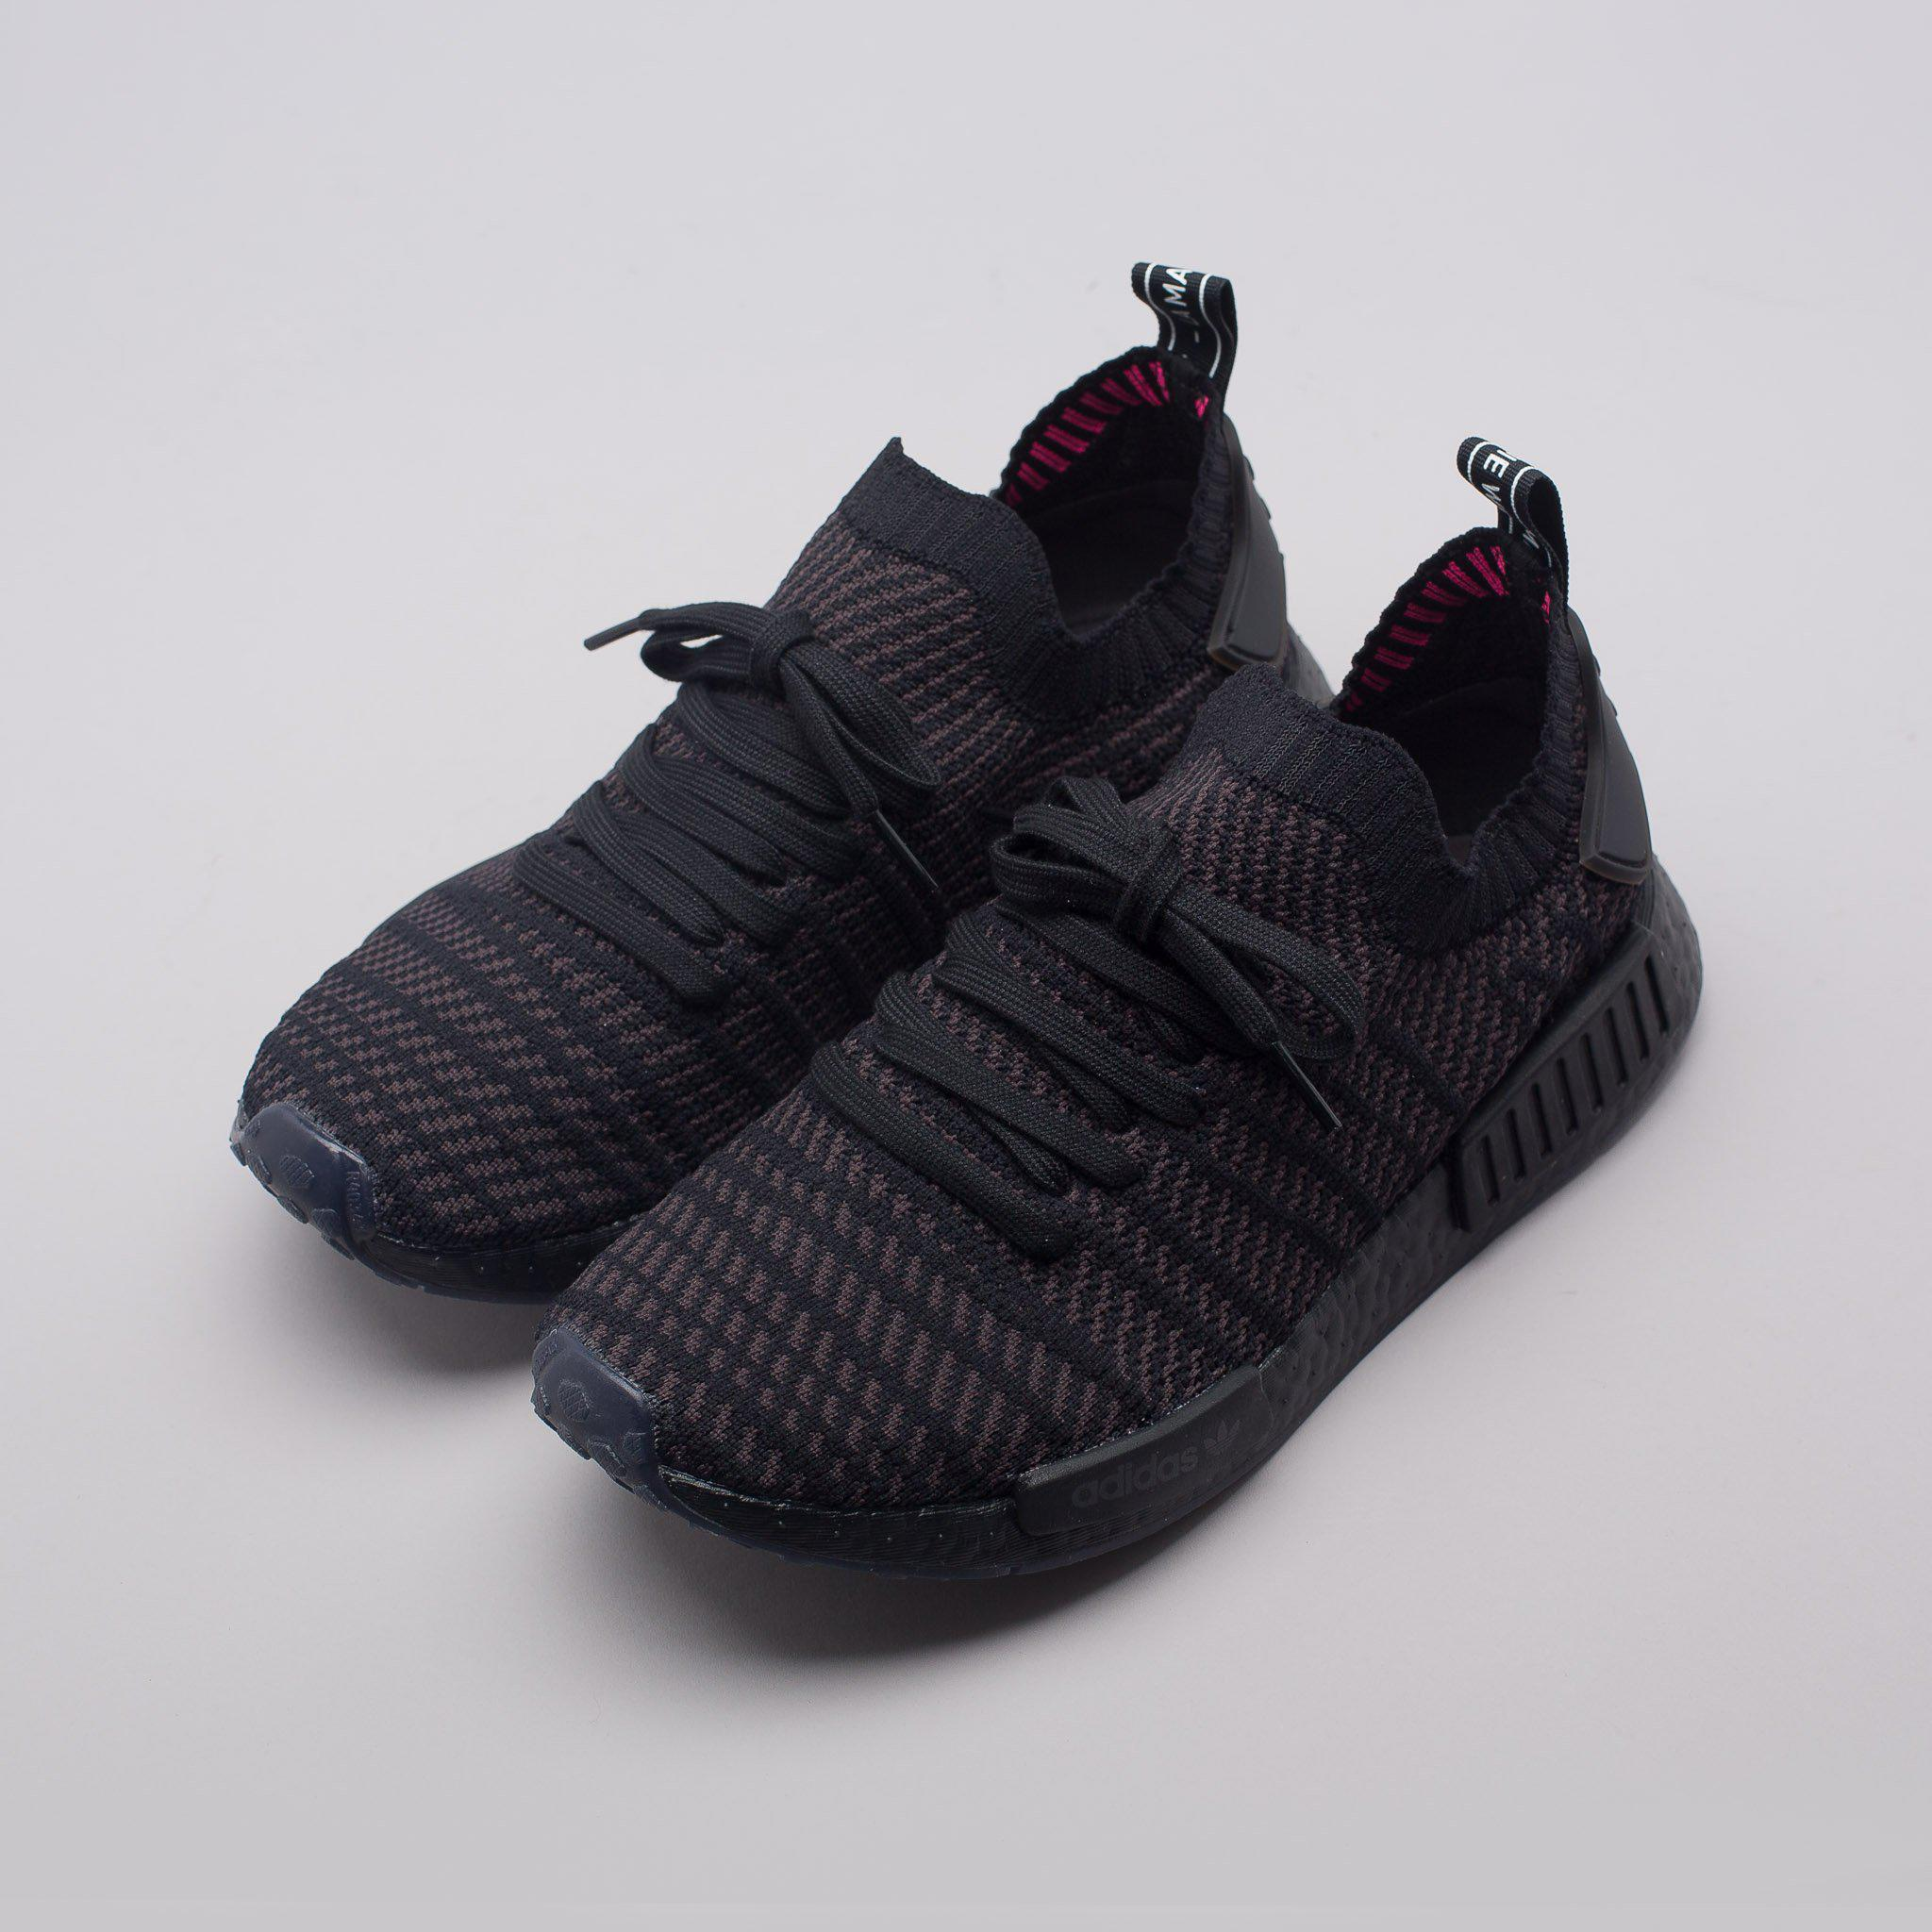 9b53c5c0c Lyst - adidas Nmd R1 Stlt Primeknit In Triple Black in Black for Men